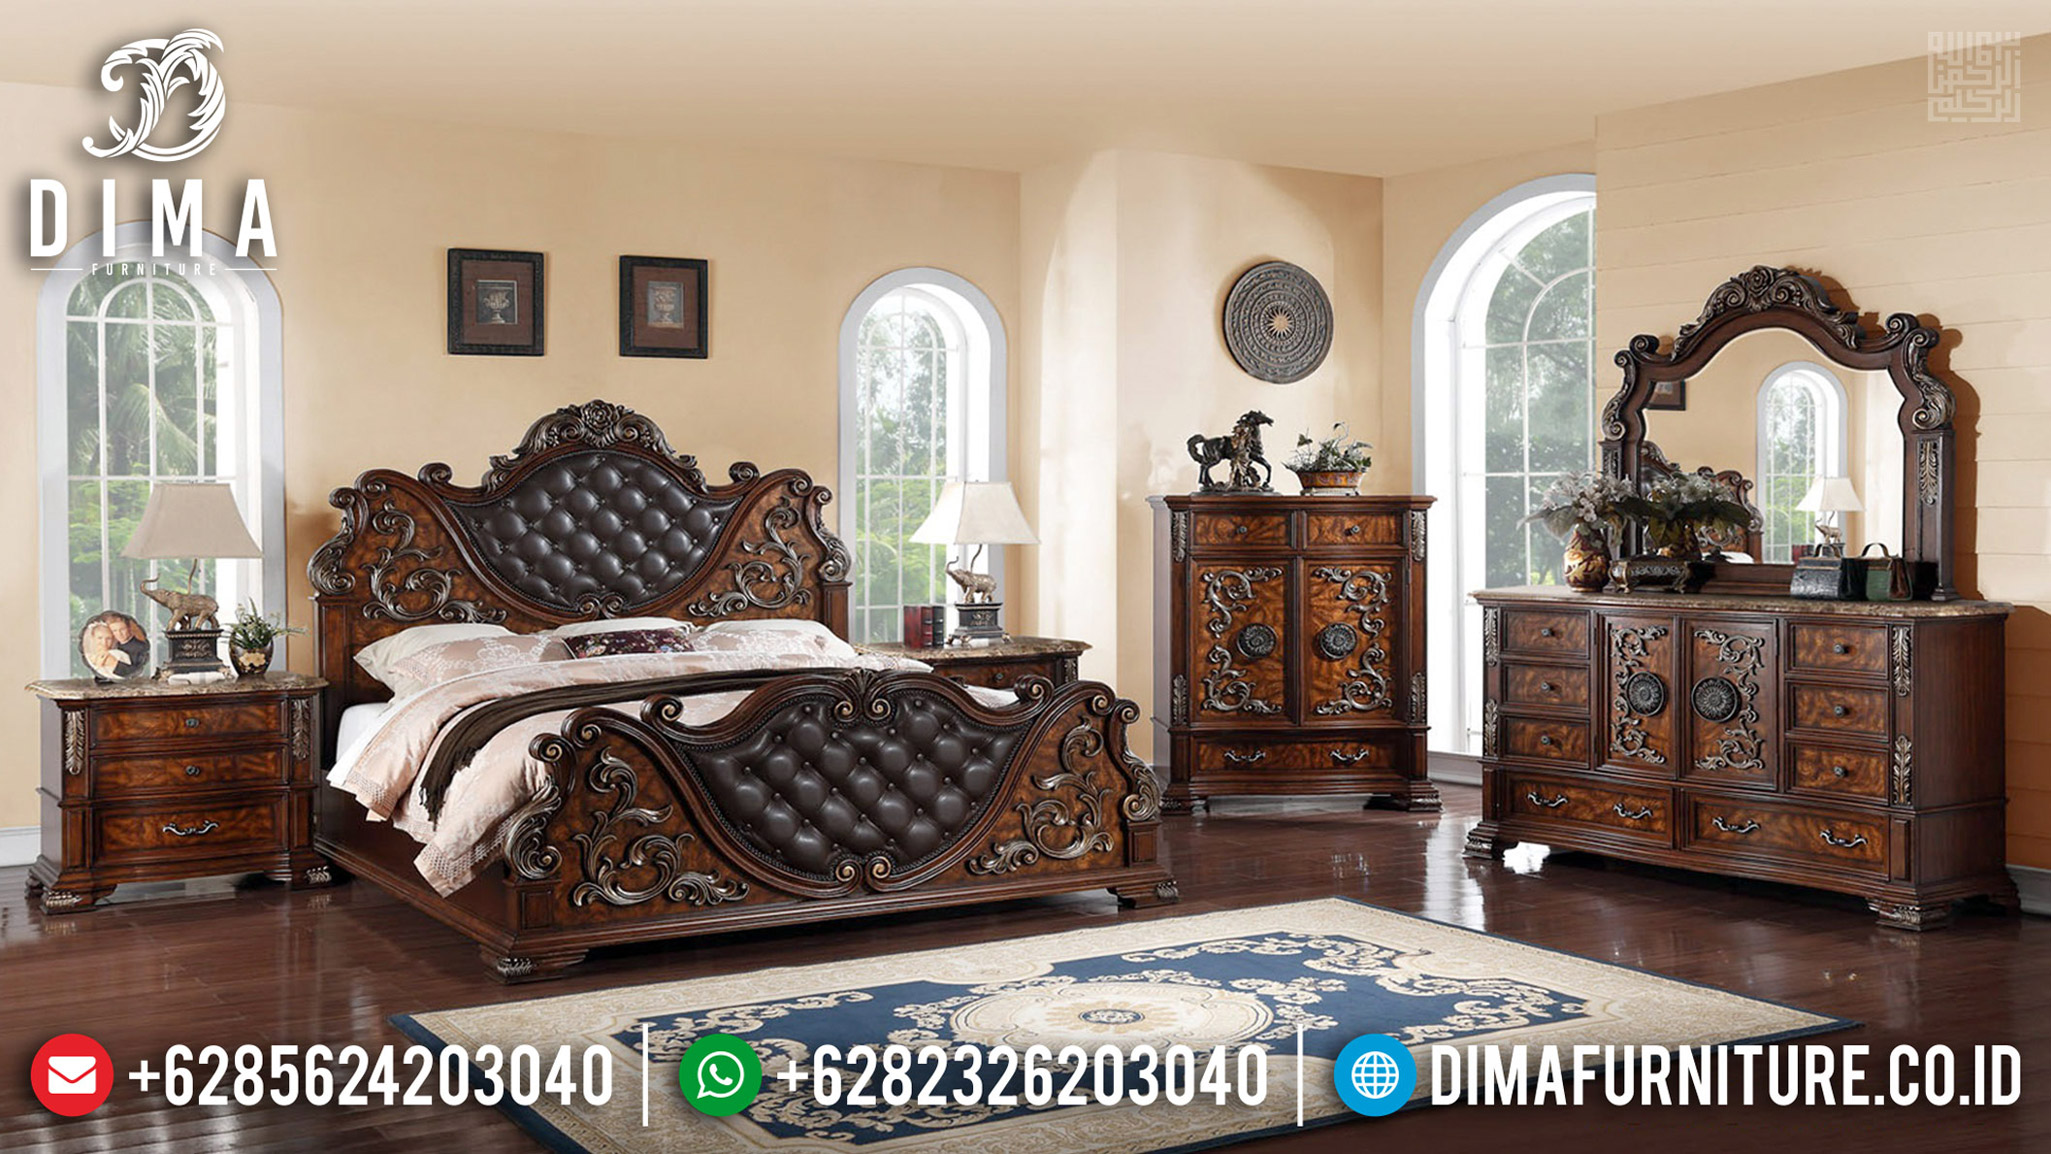 Jual Kamar Set Mewah Jati Natural Antique Furniture Jepara MMJ-0609